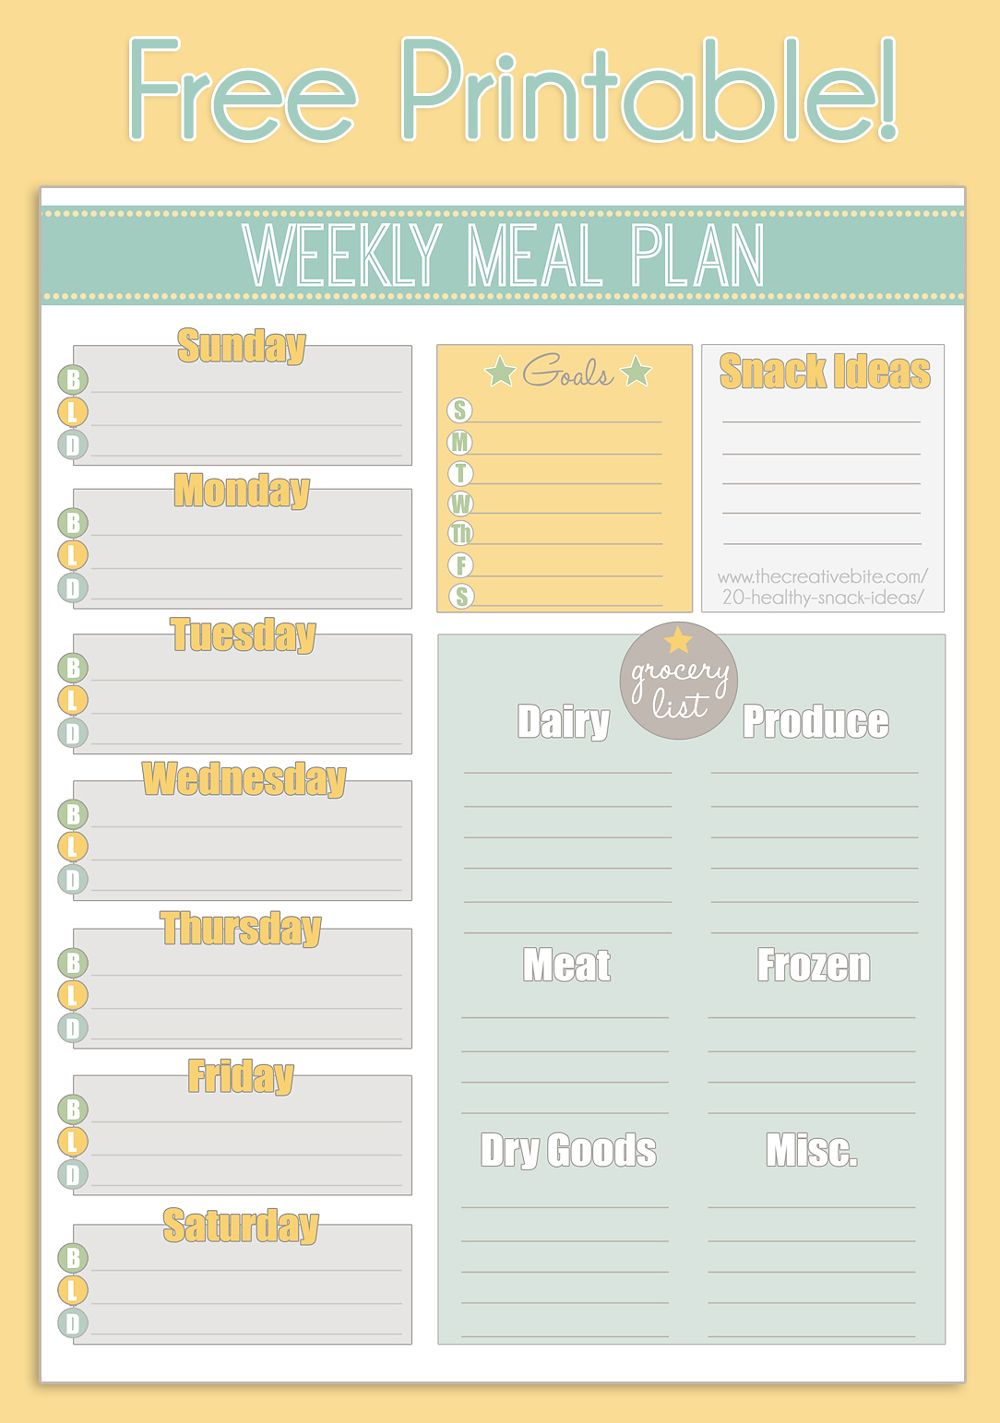 Use This Free Printable Weekly Meal Planner To Organize Your Menu